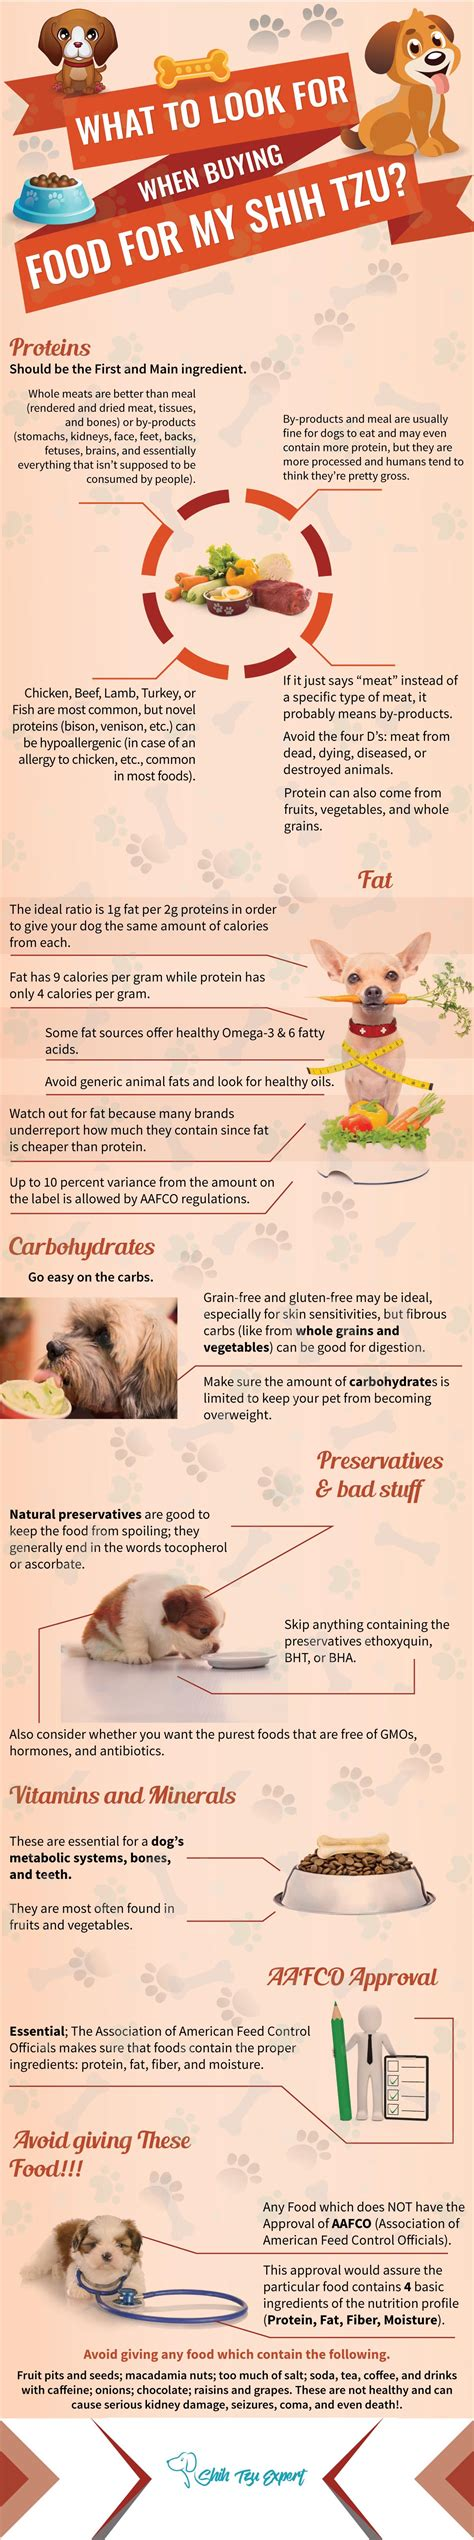 recommended food for shih tzu what to look for when buying food for a shih tzu infographic